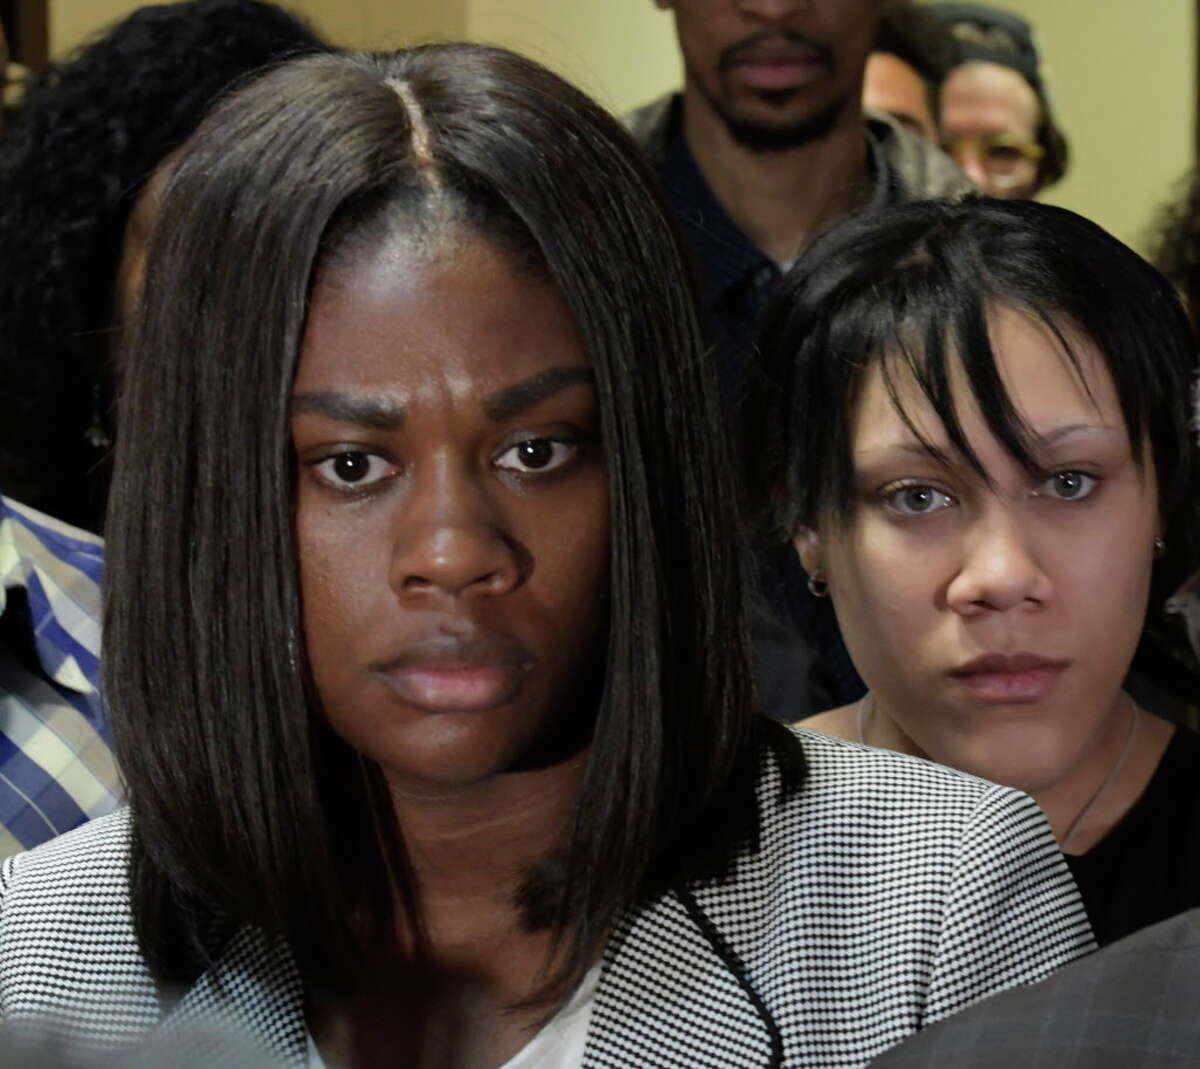 Asha Burwell, left and Ariel Agudio leave the courtroom after their sentencing Friday June 16, 2017 at the Albany County Judicial Center in Albany, N.Y. (Skip Dickstein/Times Union)